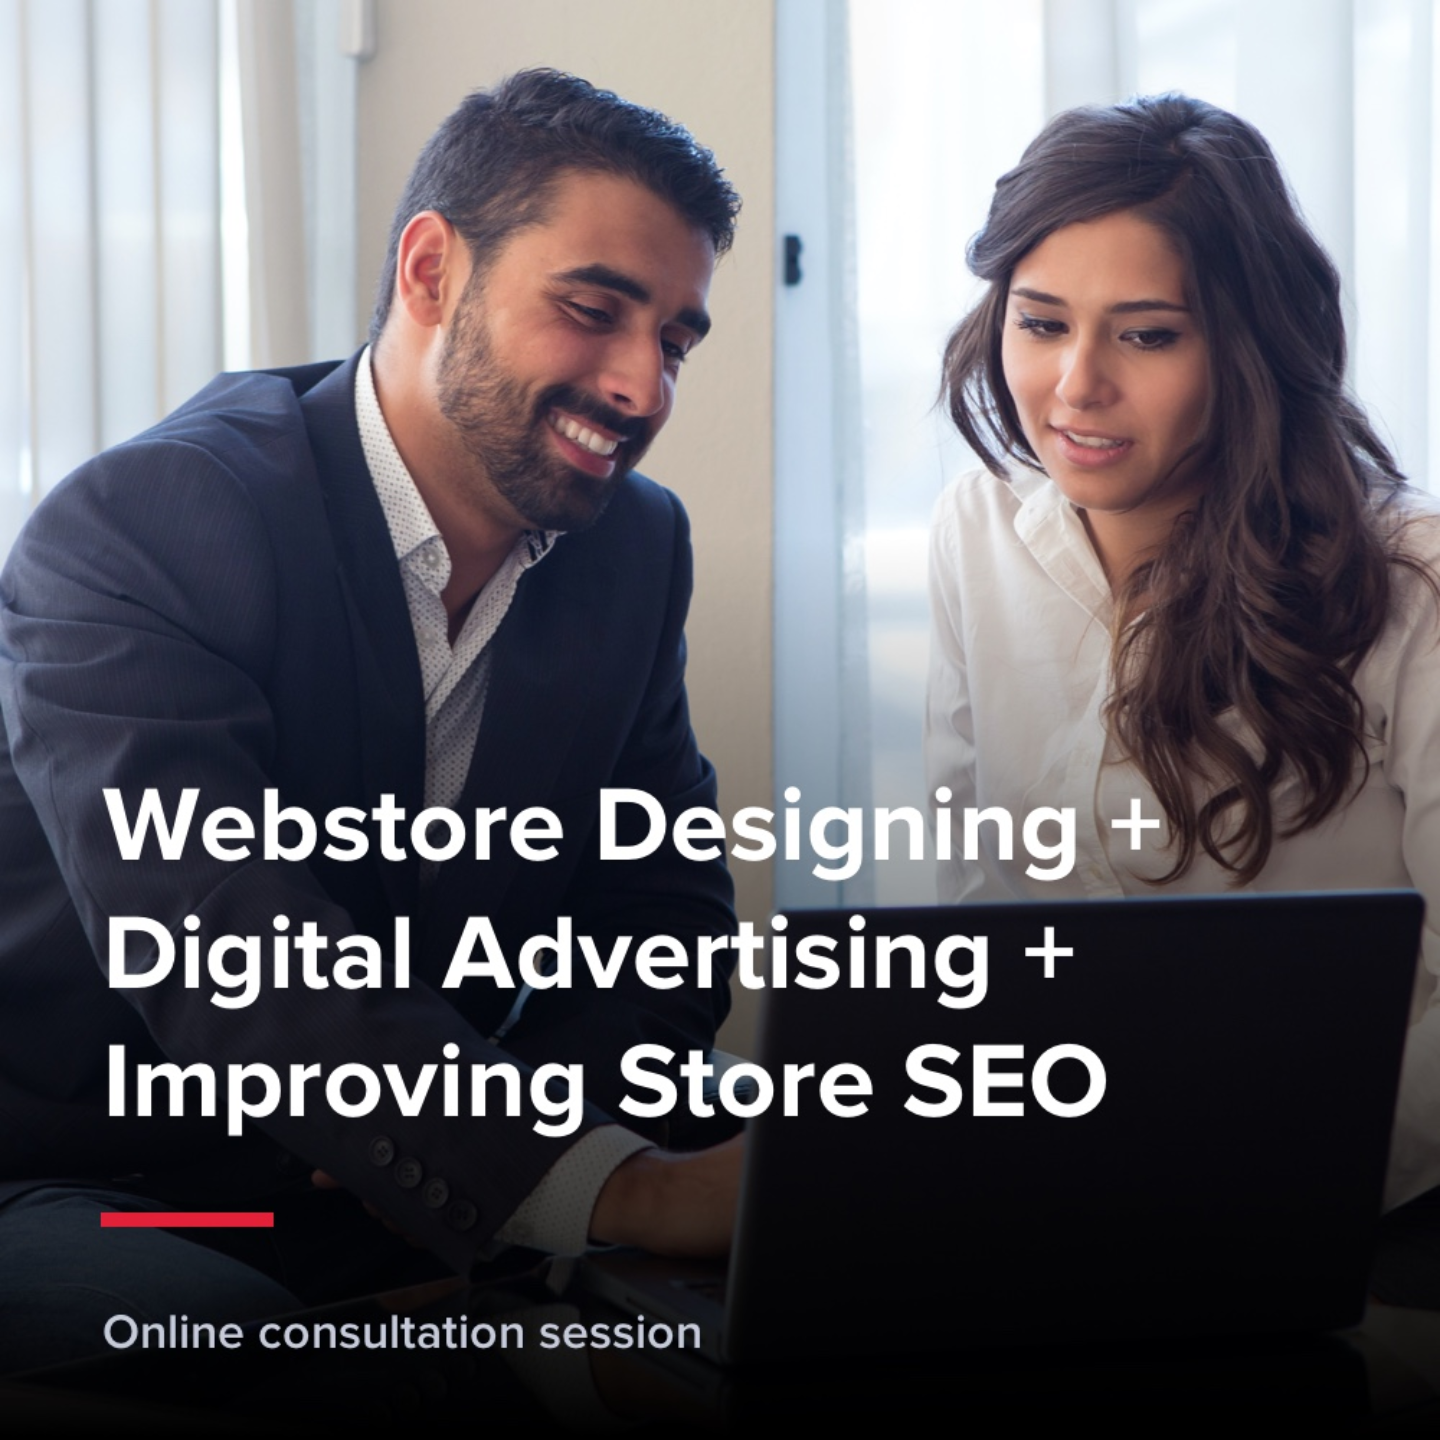 Mega Bundle - Webstore designing + Digital Advertising + Improving Store SEO